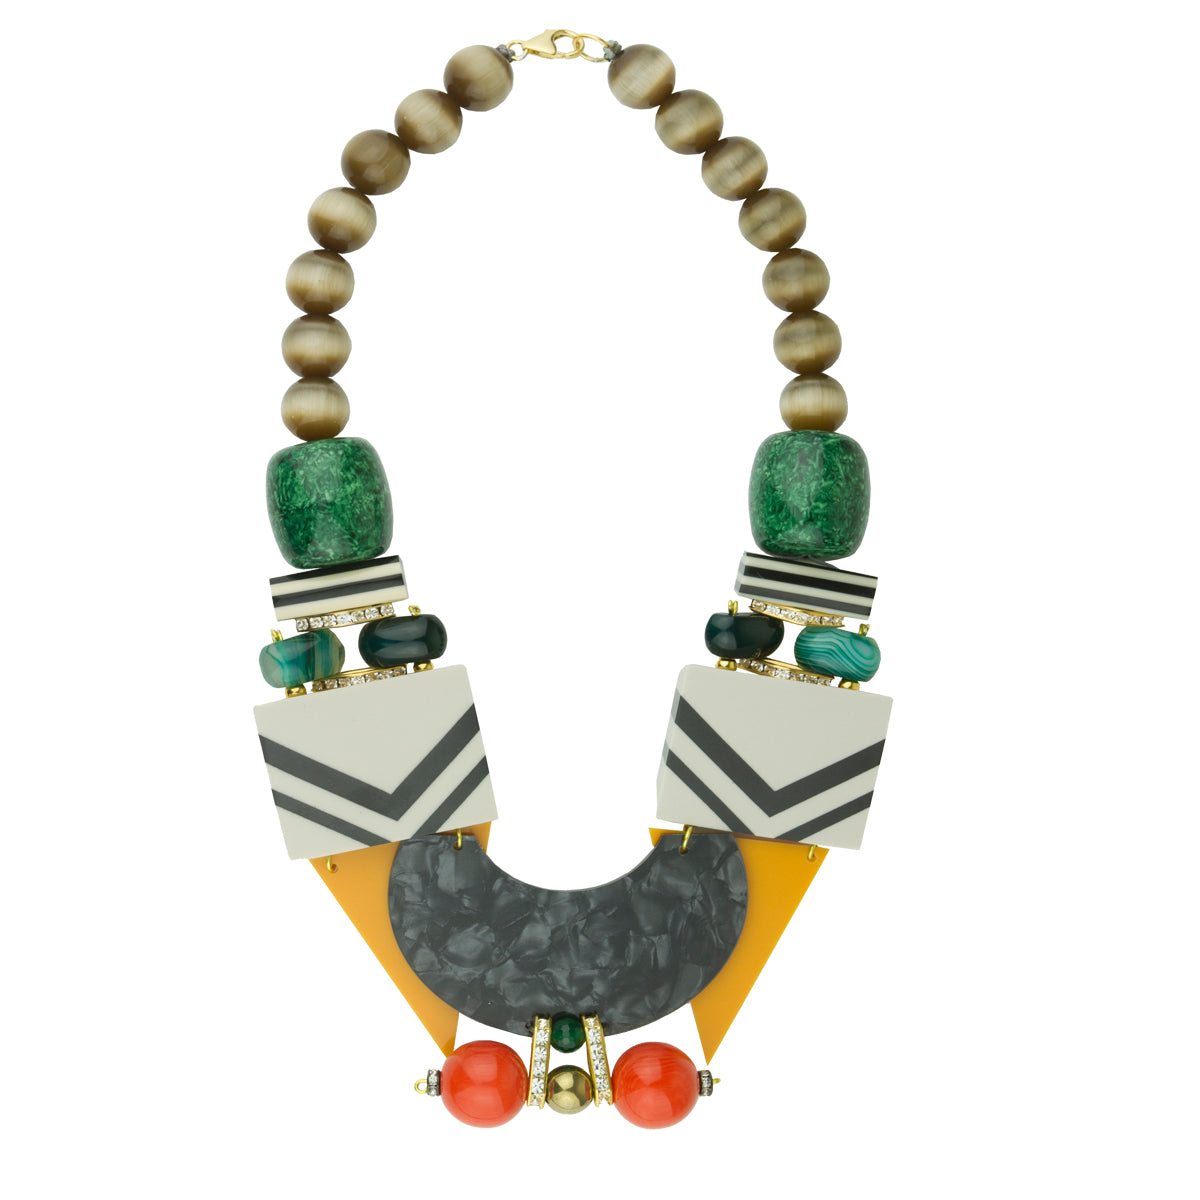 Memphis Resin and Acrylic Statement Necklace with Green Agate